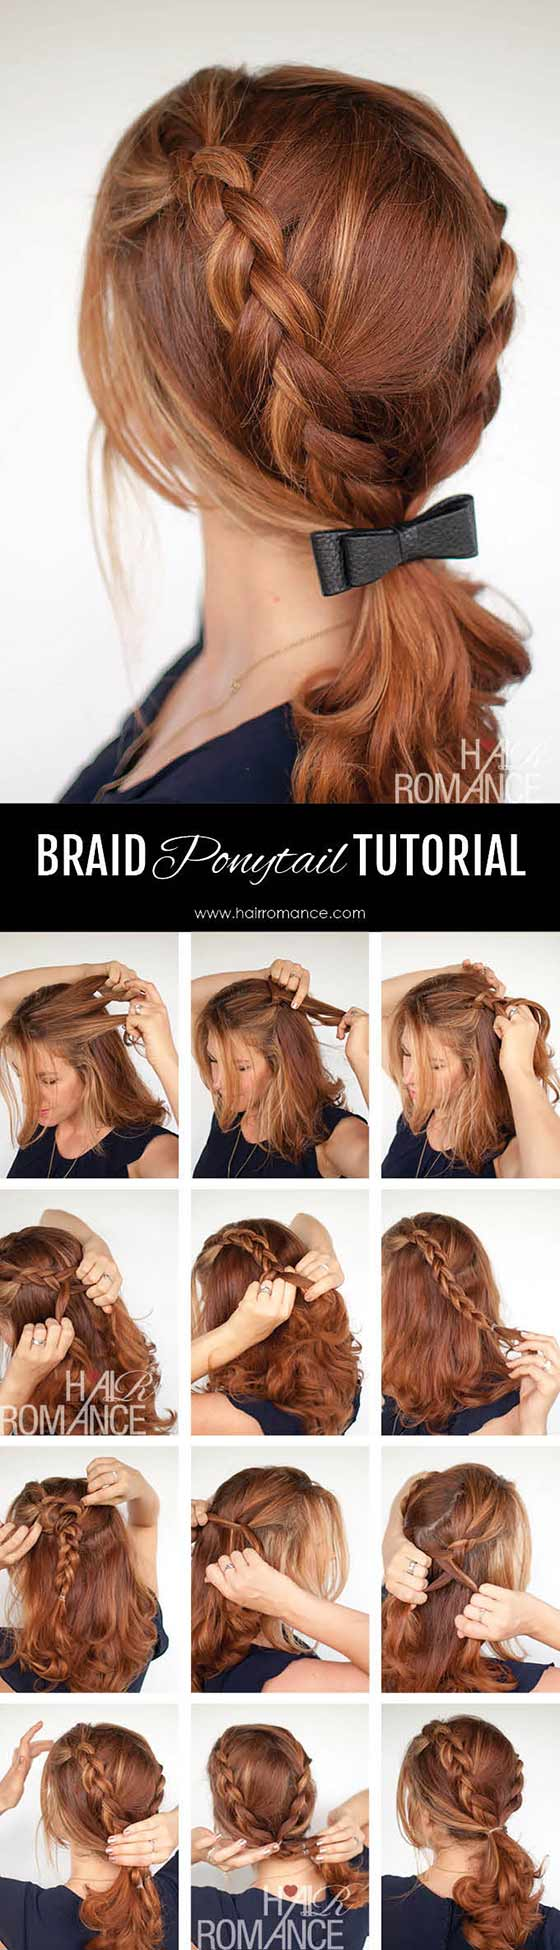 Braid-Ponytail-With-Bow-Accessory